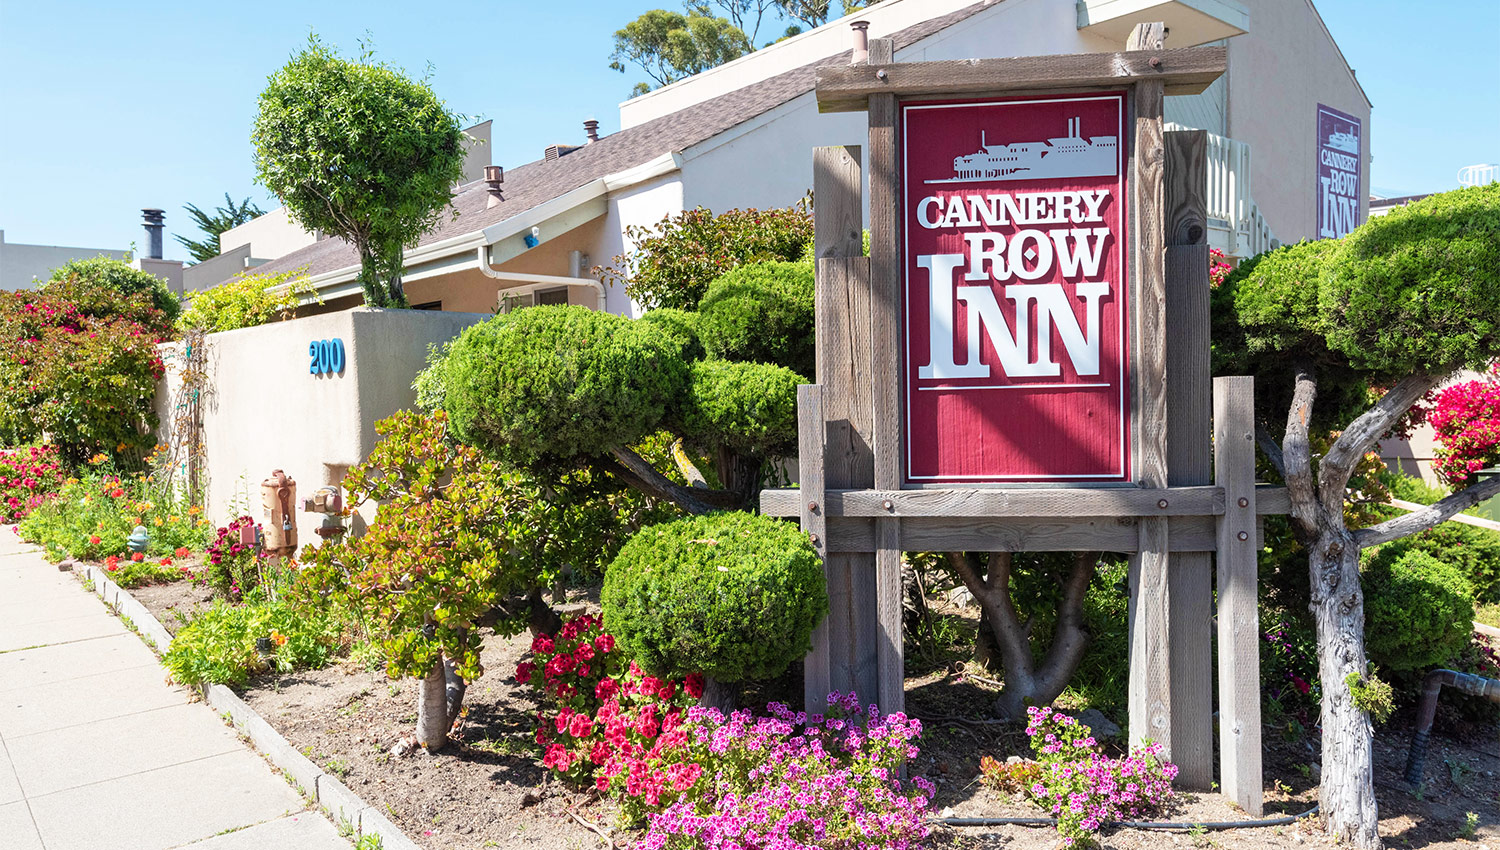 Welcome To The Cannery Row Inn, minutes from the row in Monterey, CA